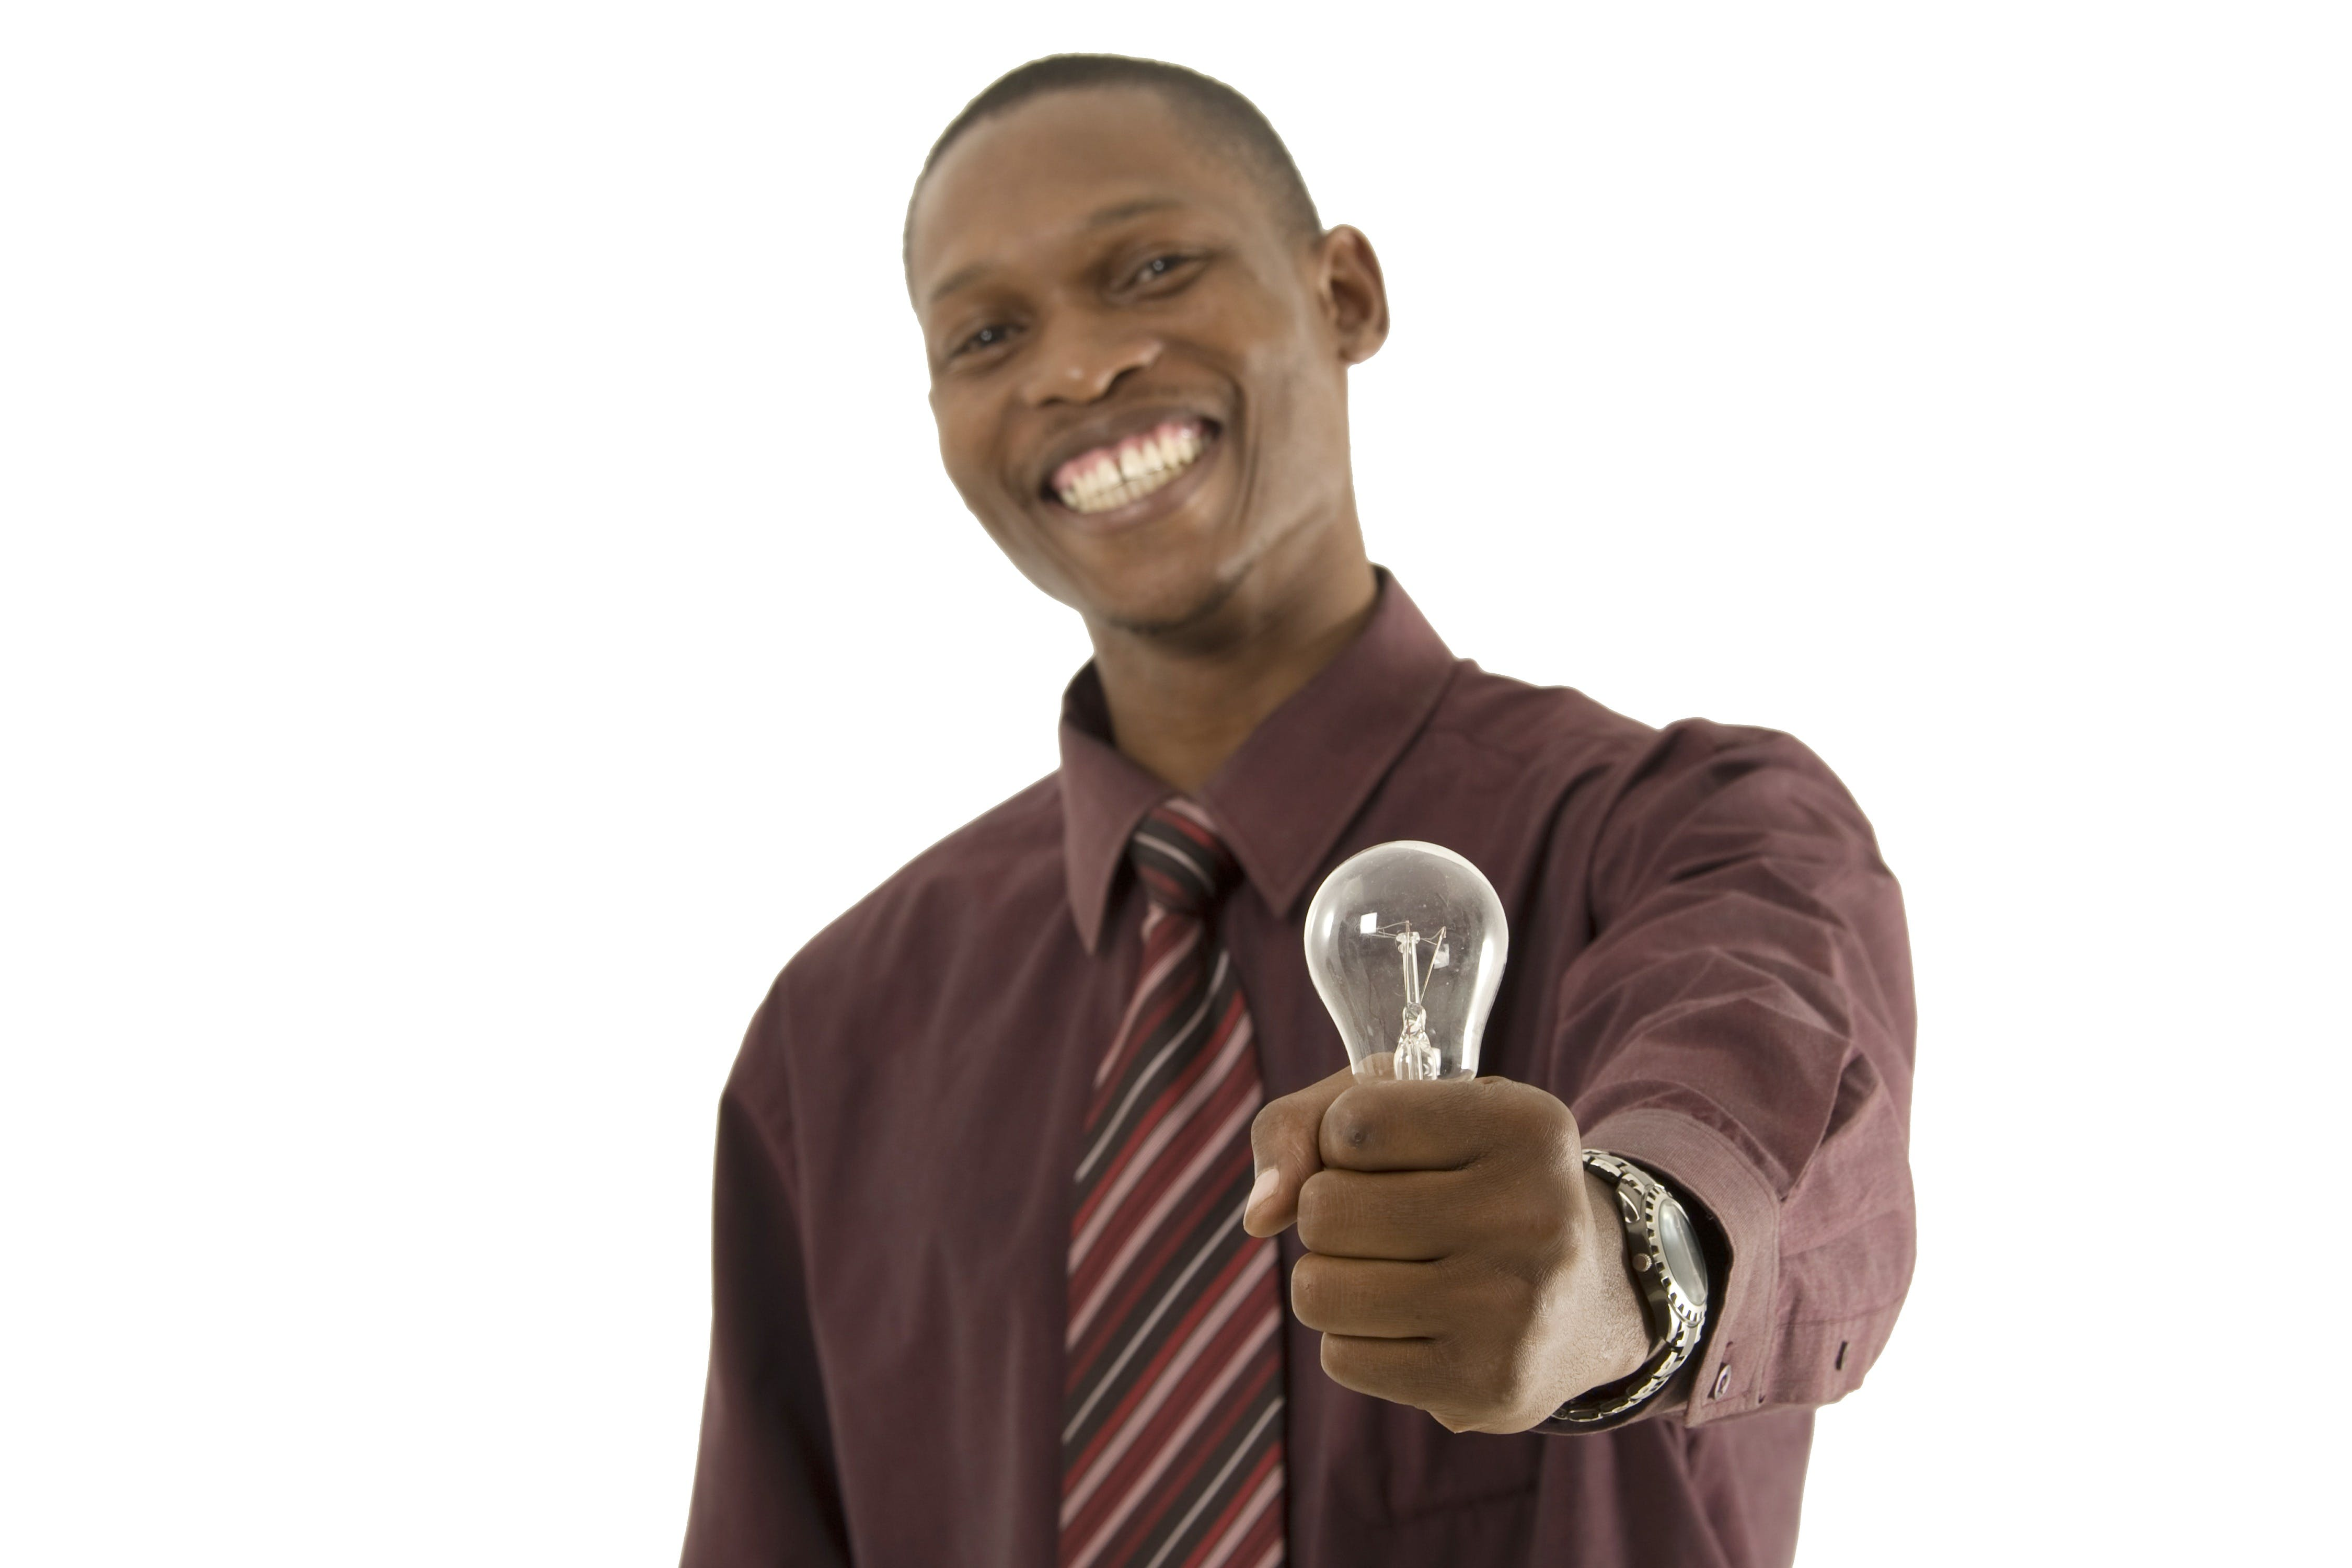 Free stock photo of man, idea, thinking, laughing